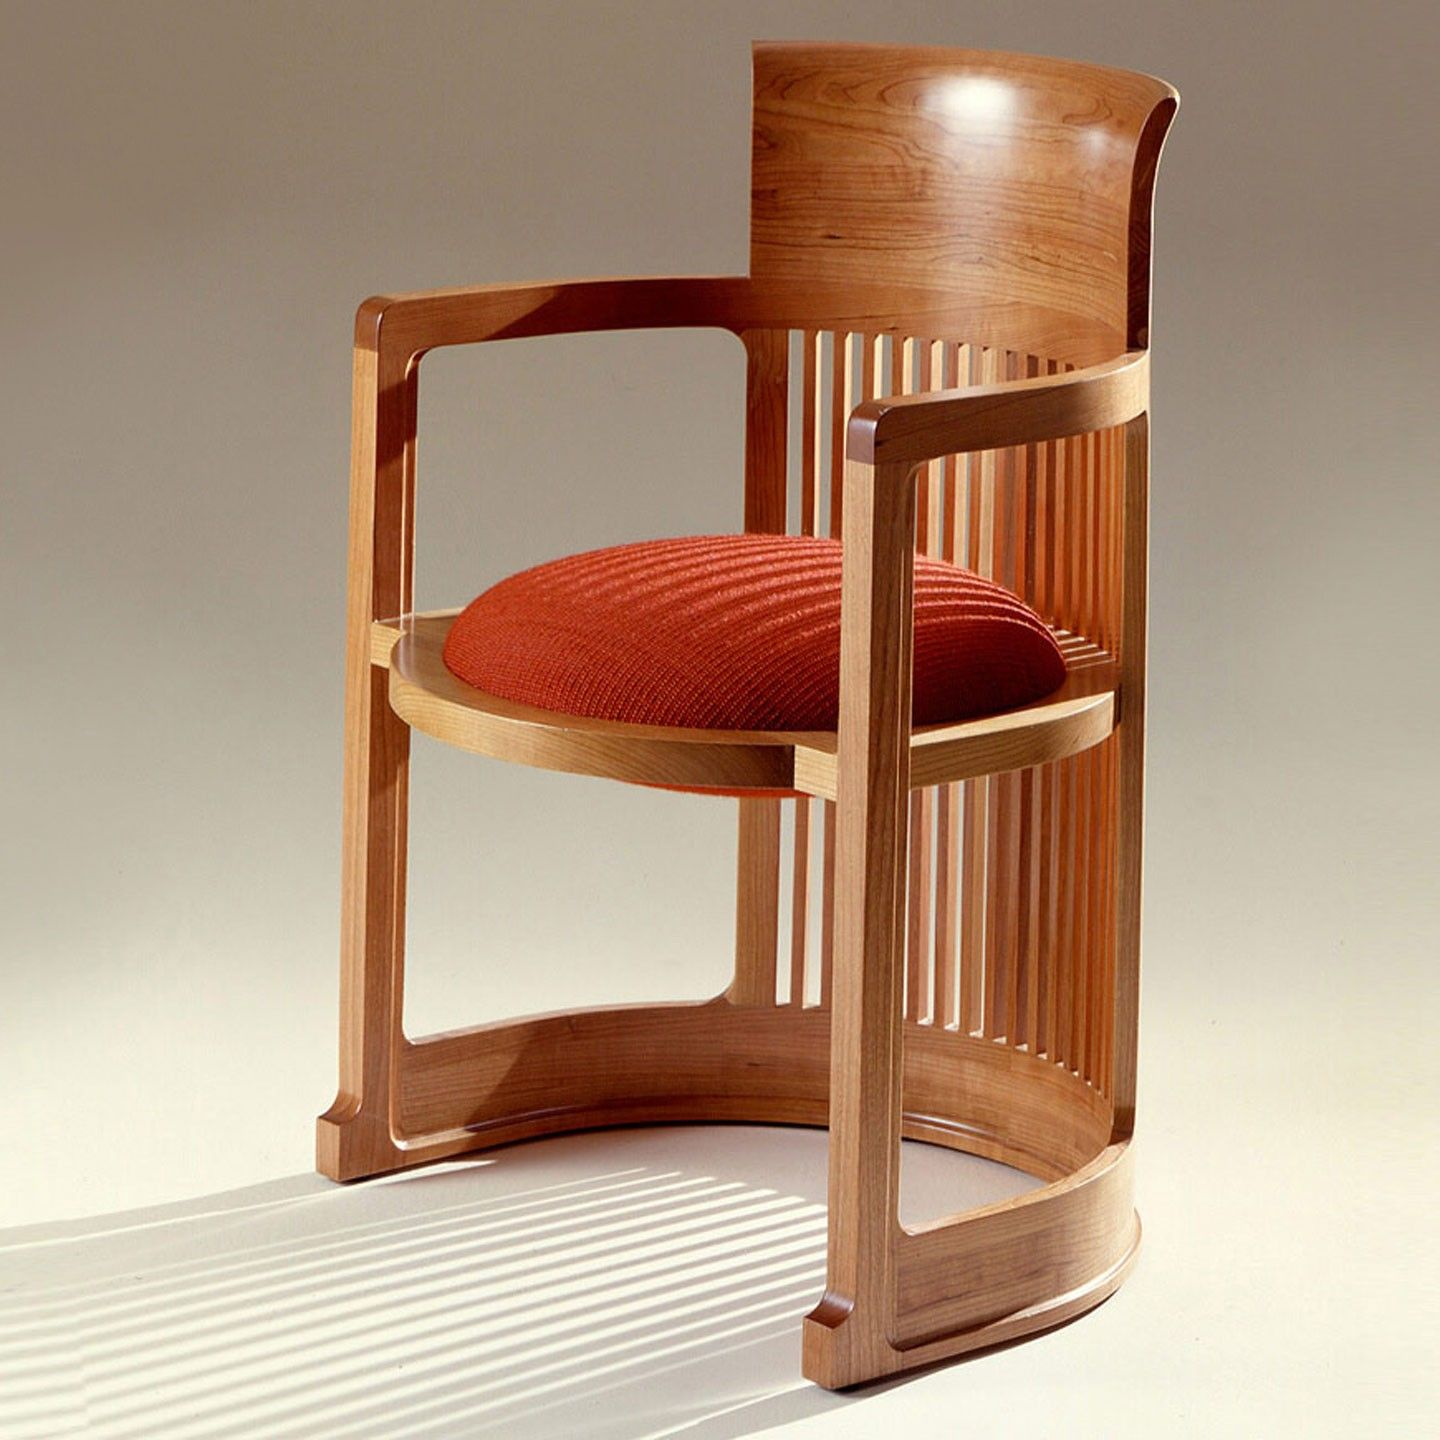 Marvelous Glamorous Crate And Barrel Green Chairs And Barrel Chair By Frank Lloyd  Wright